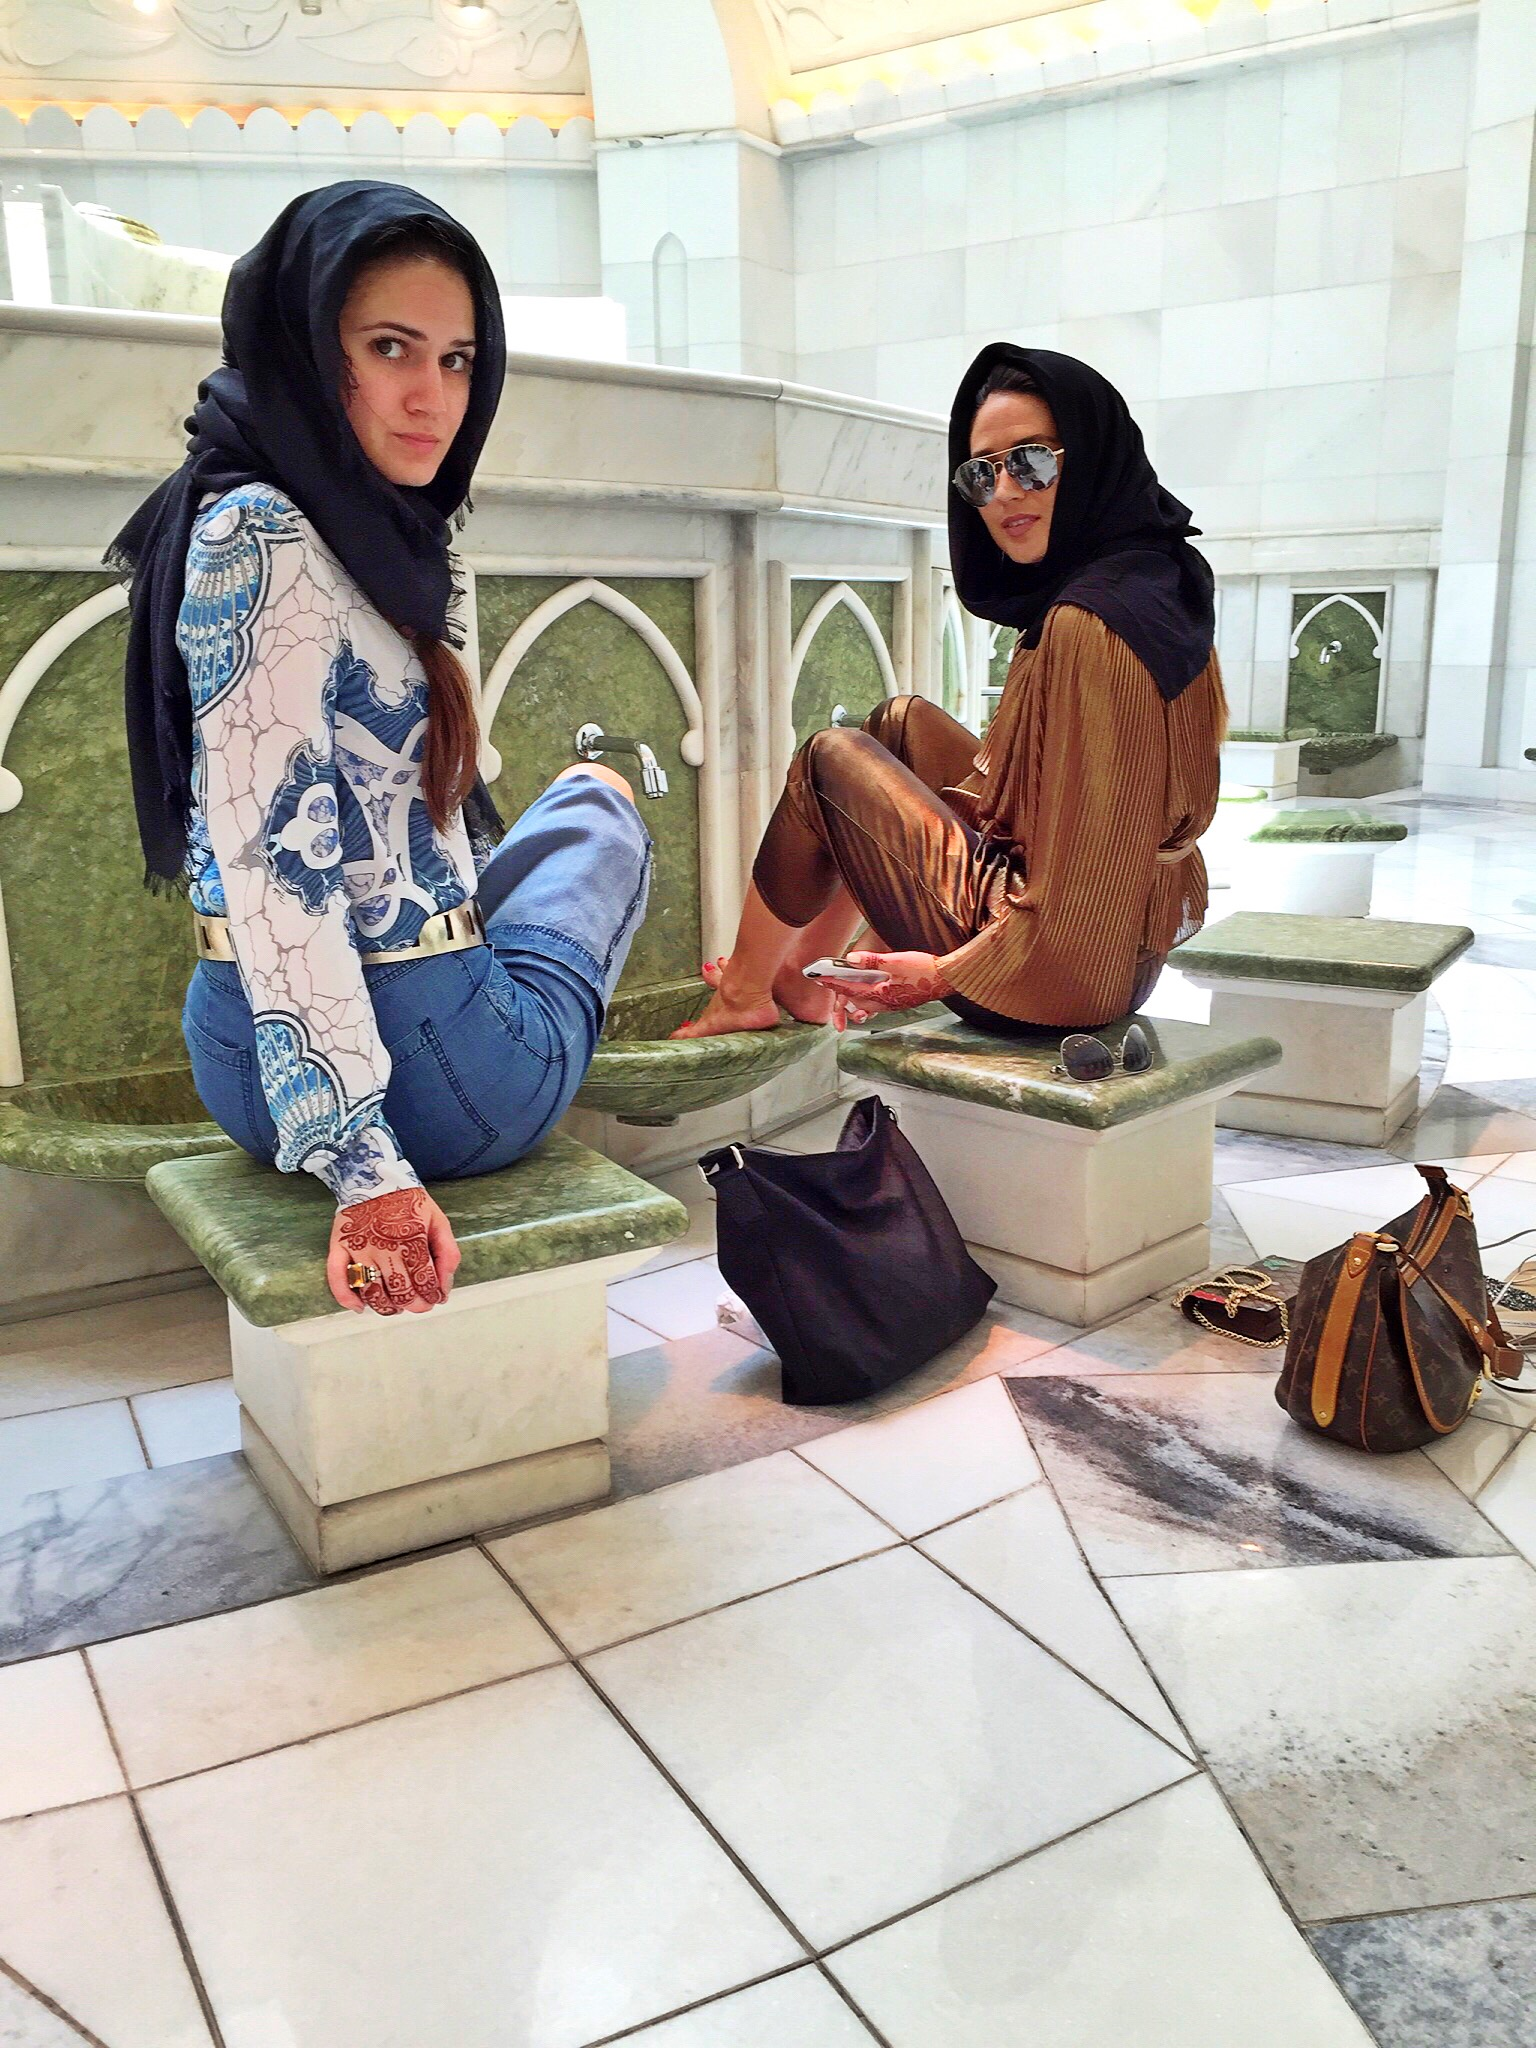 washing-of-feet-inside-womens-bathroom-mosque-abu-dhabi